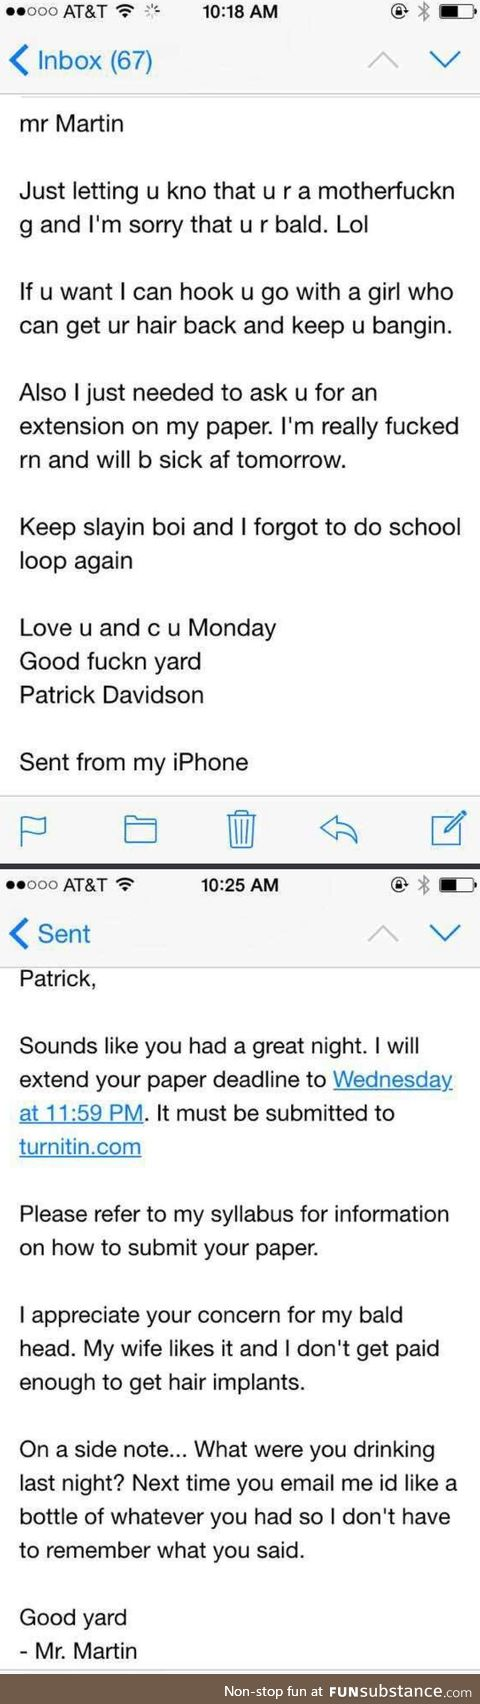 Drunk students convo with a professor